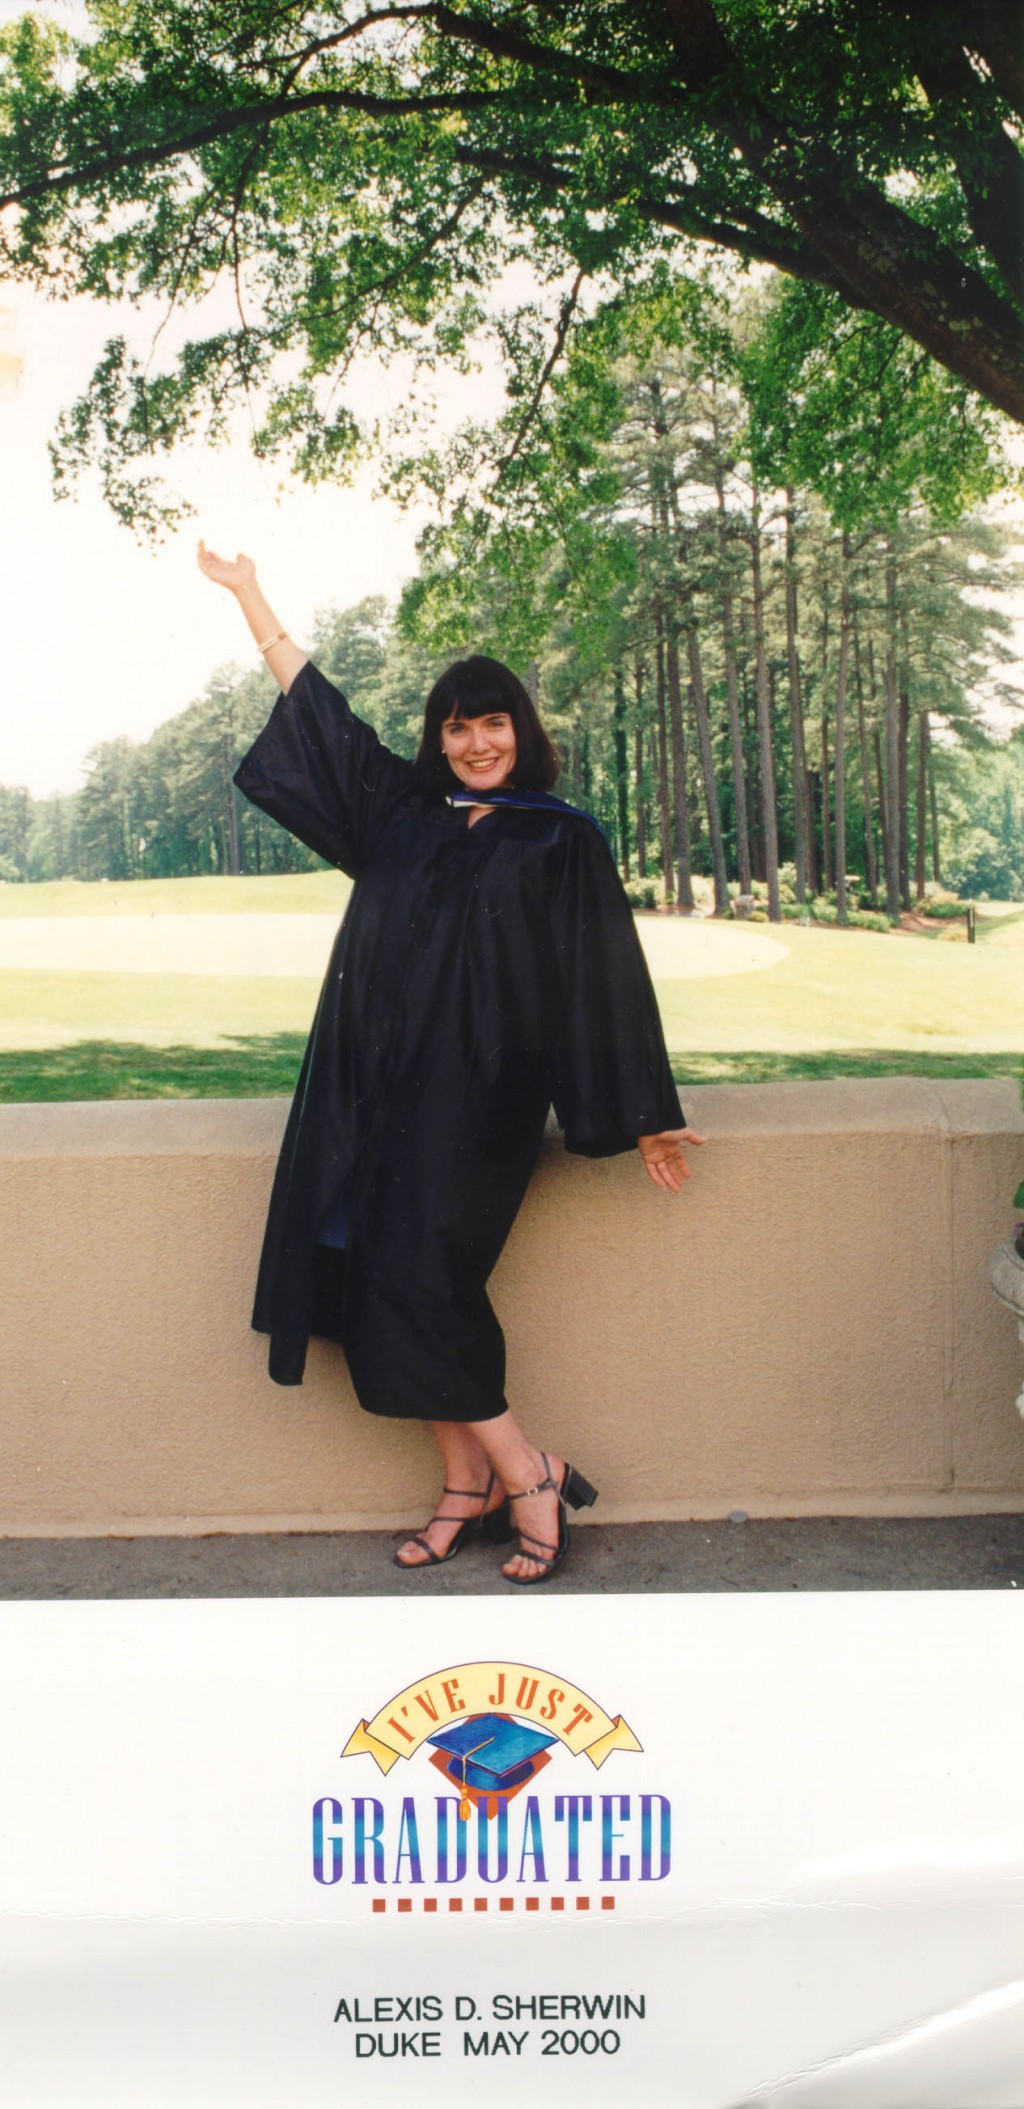 <p>Blanka's granddaughter Alexis Danielle graduates from university in May 2000.</p>